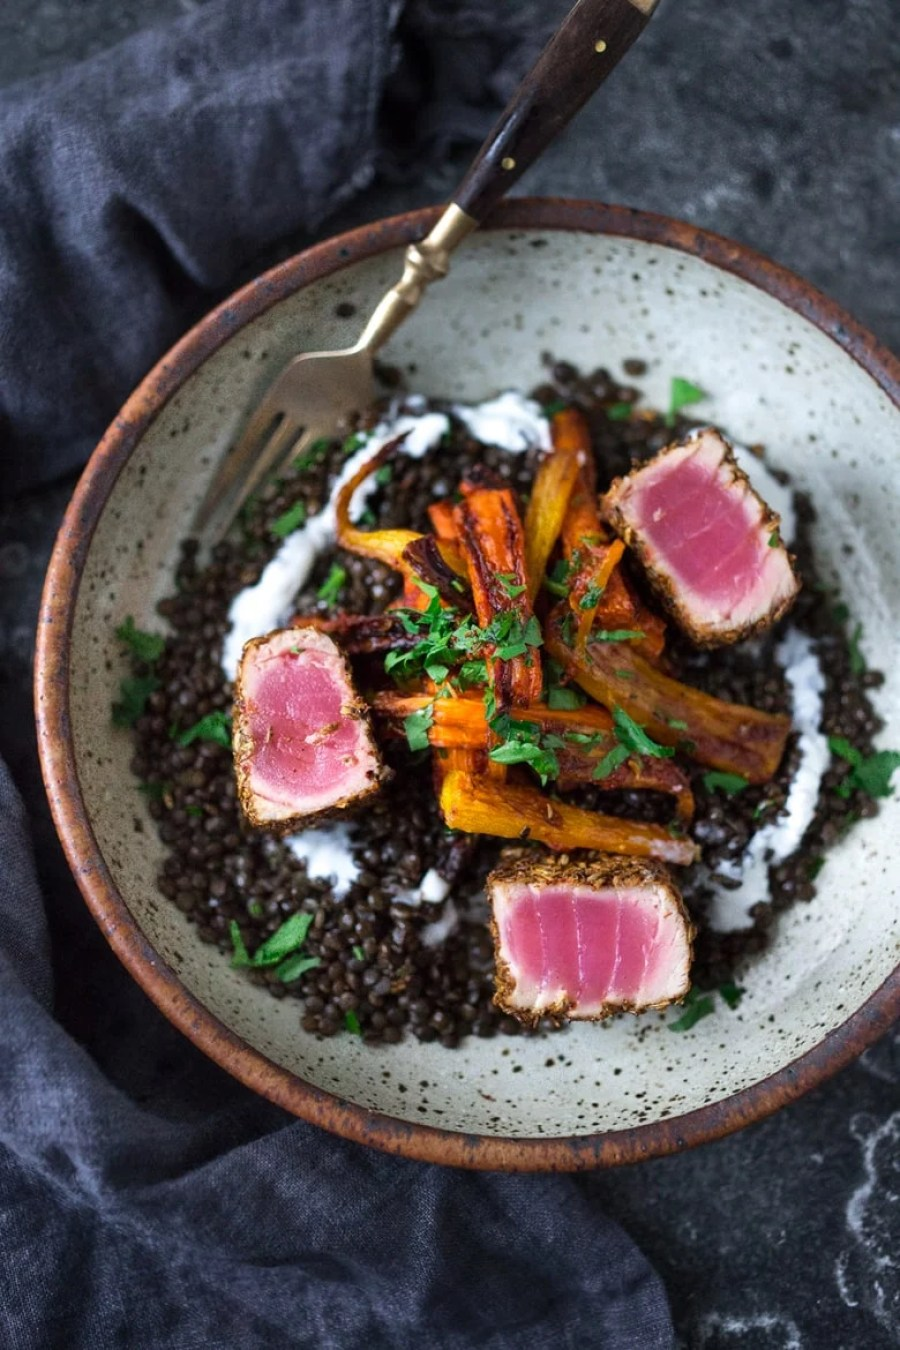 Fennel and Cumin Crusted Ahi served over Seasoned Black Beans with Roasted Carrots | www.feastingathome.com